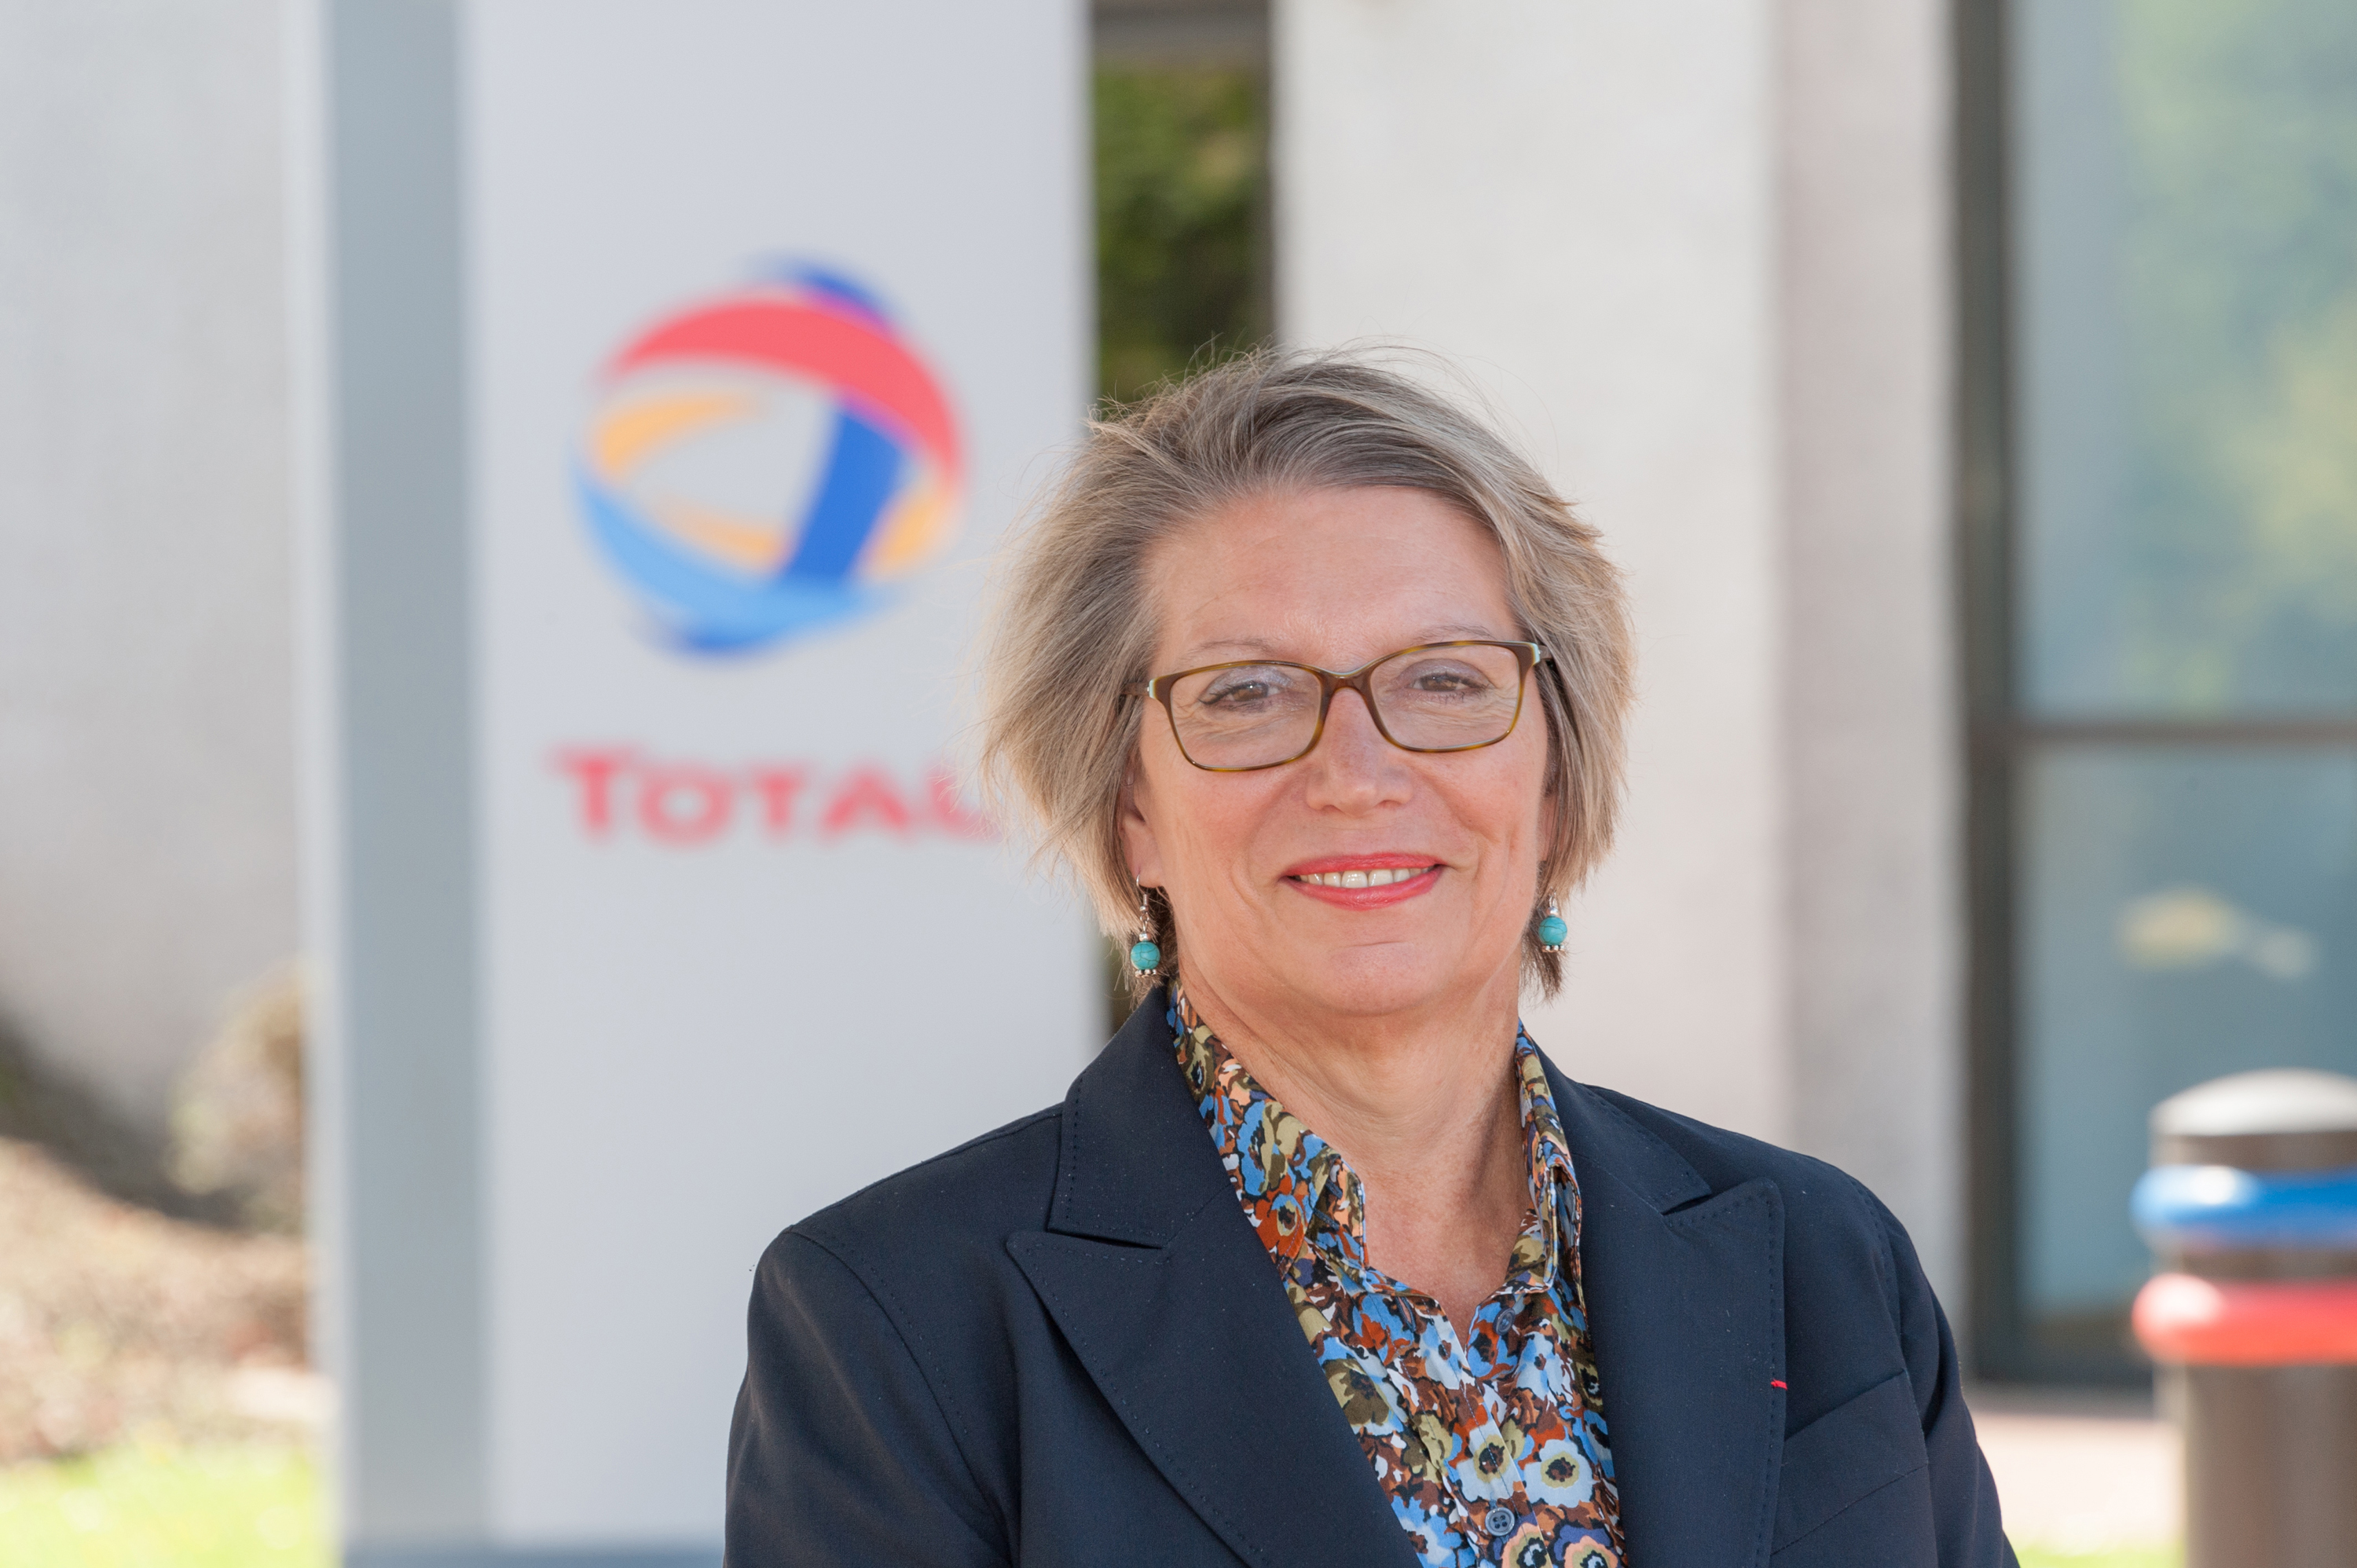 Former Total boss Elisabeth Proust joins Premier's board in a separate non-executive role